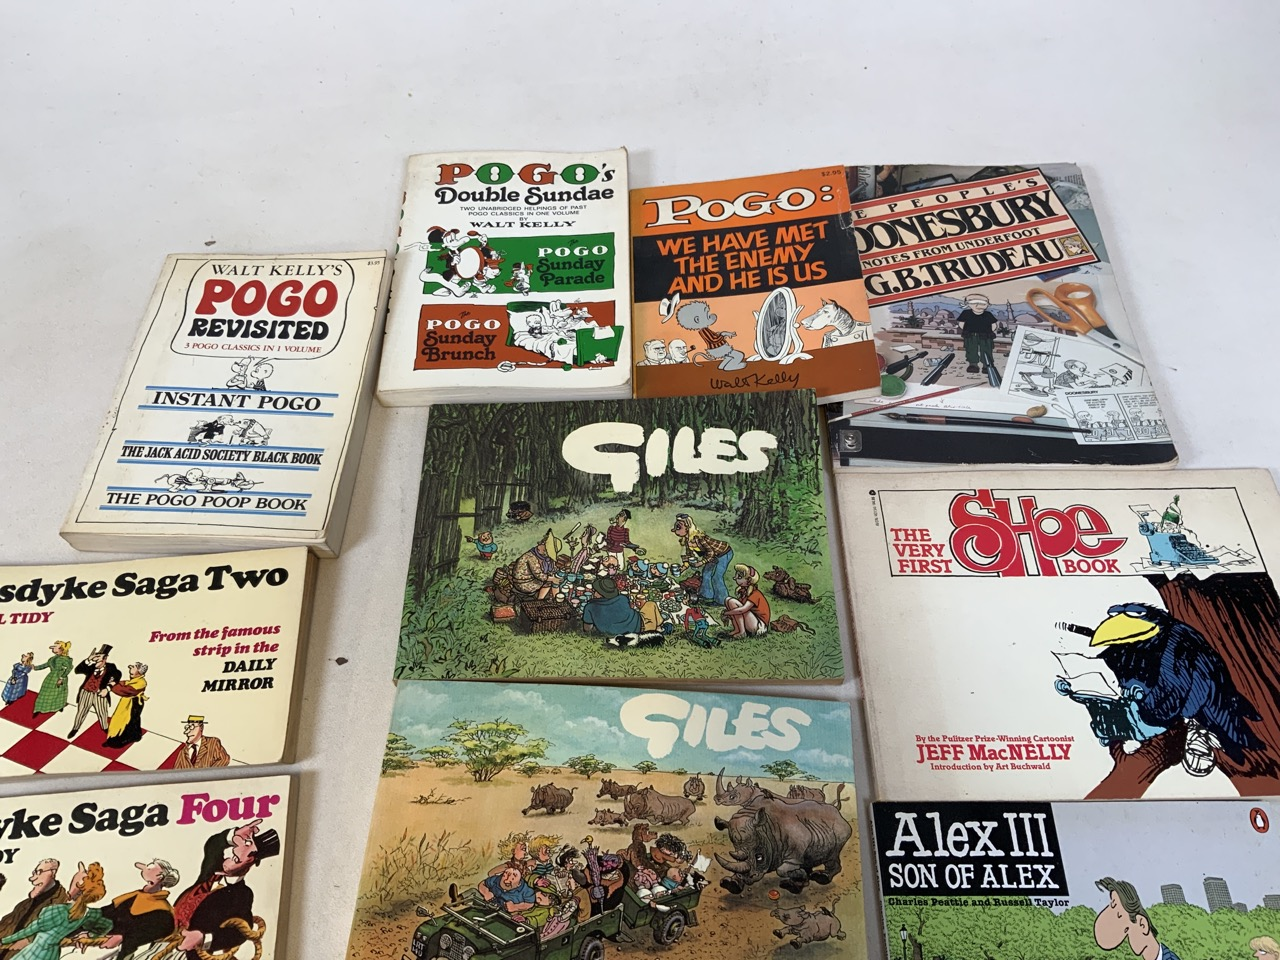 A collection of comic strip and illustrated book titles to include Walk Kellys Pogo Revisited, We - Image 2 of 3